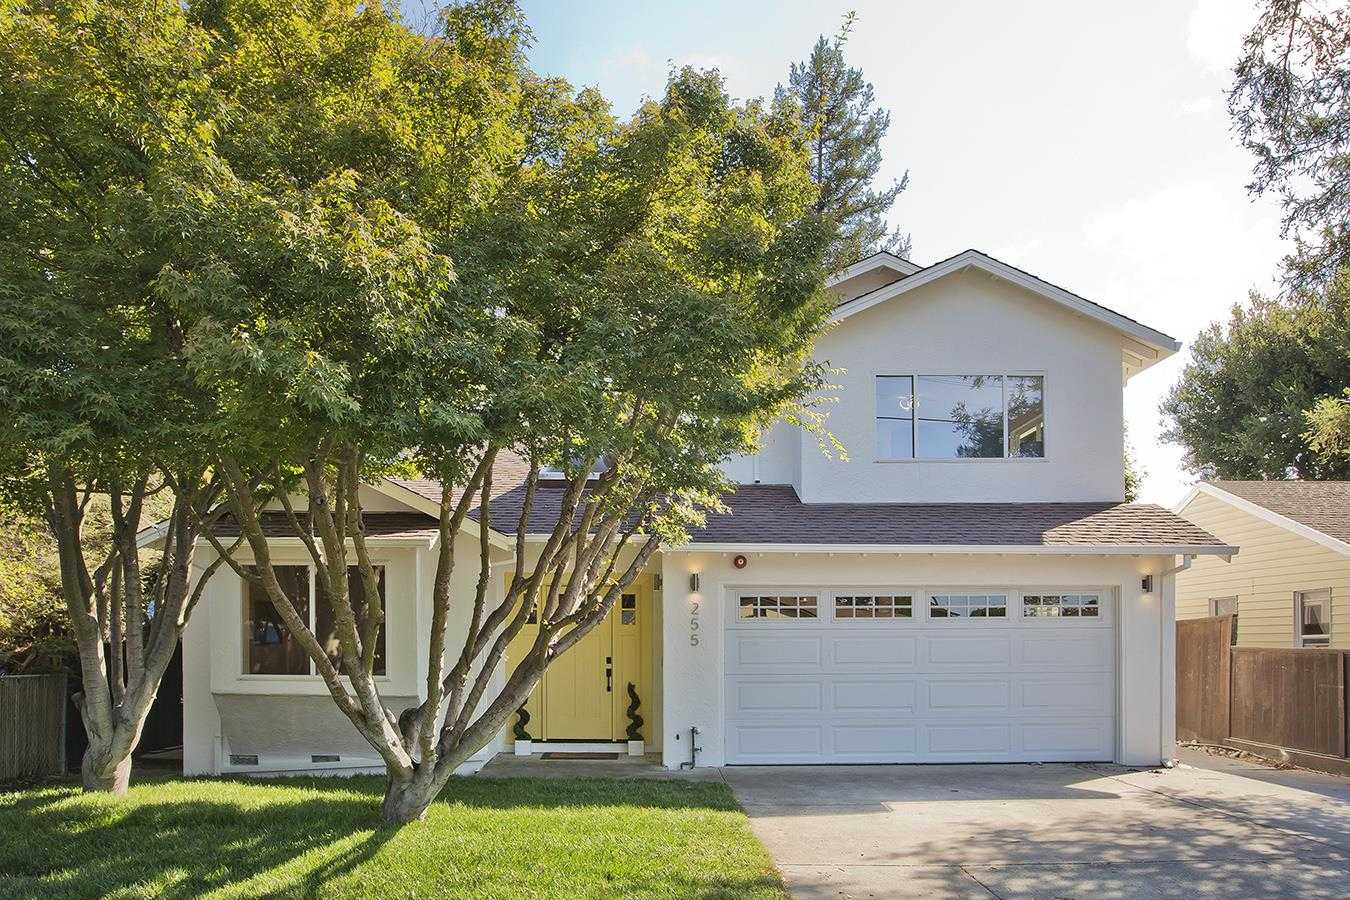 255 Belmont Ave Redwood City, CA 94061